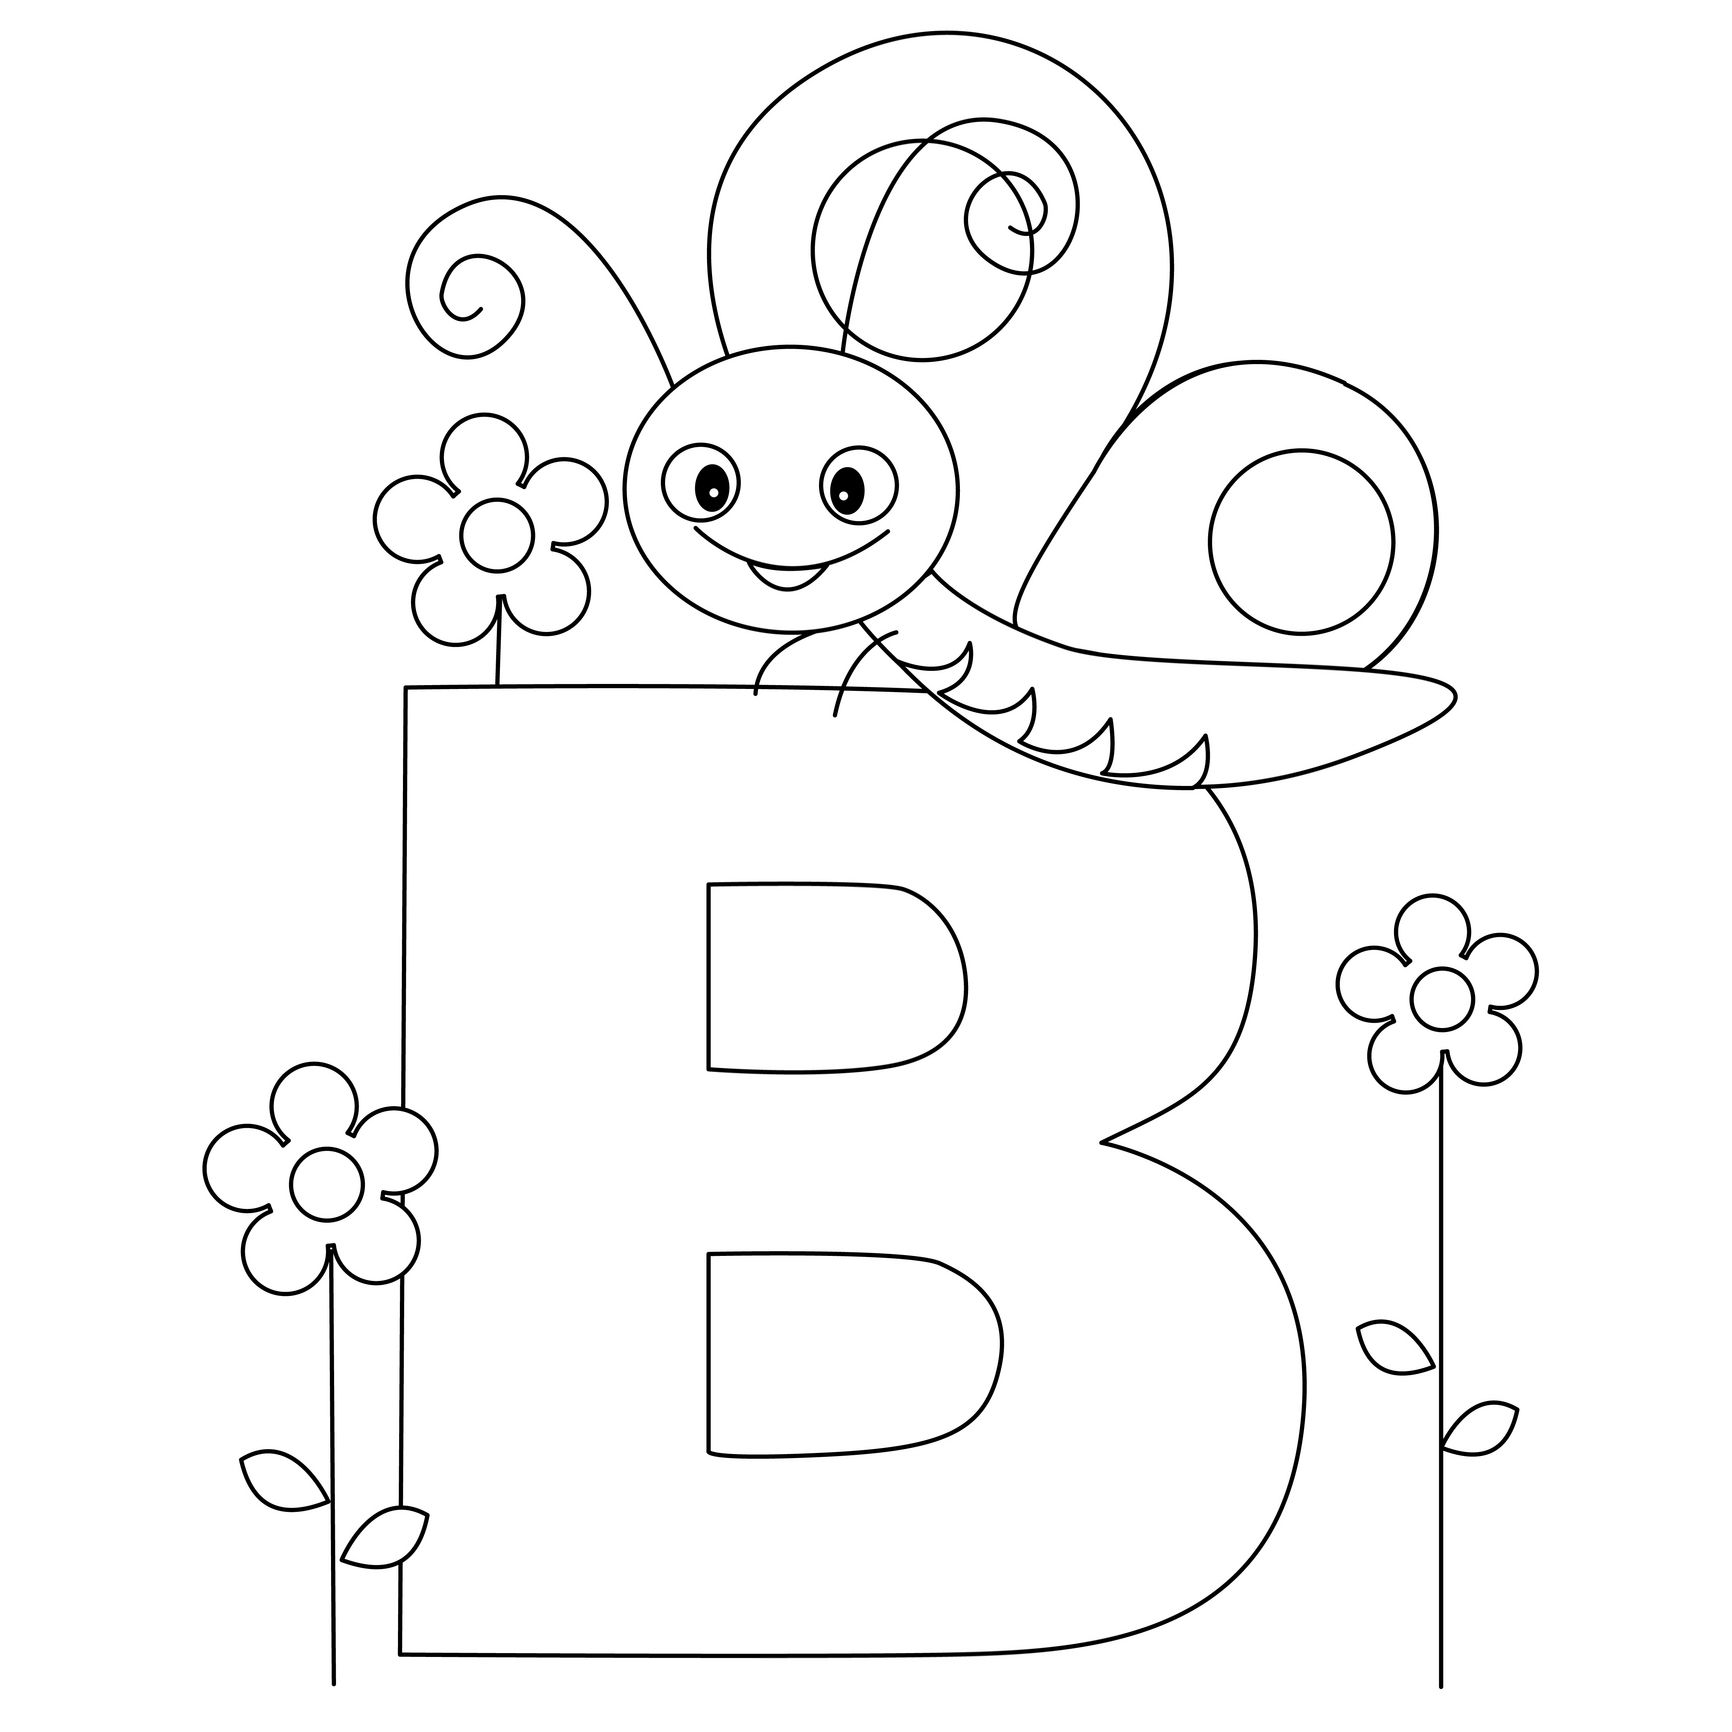 Animal Alphabet Letter B Is For Butterfly Abc Coloring Pages Kindergarten Coloring Pages Bug Coloring Pages